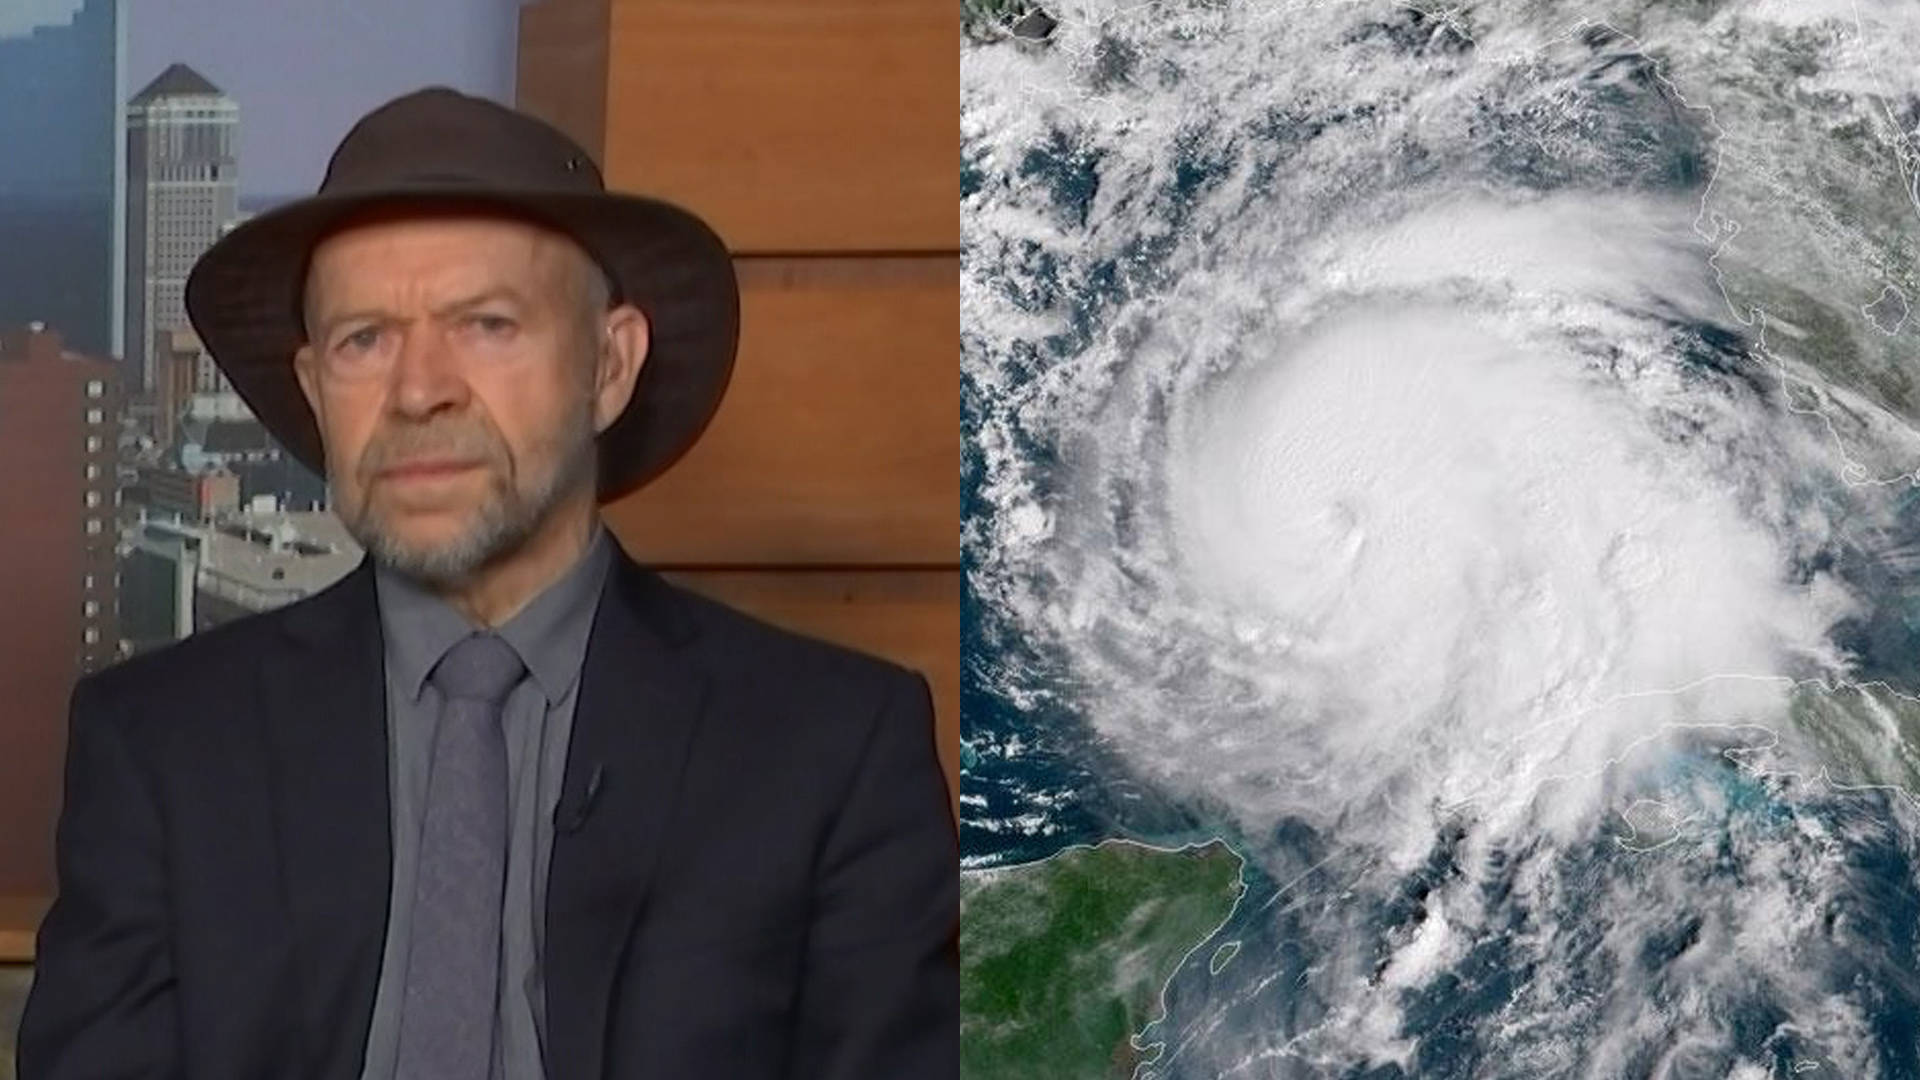 Ex-NASA Scientist Dr. James Hansen: We Need to Act Now to Preserve Our Planet For Future Generations